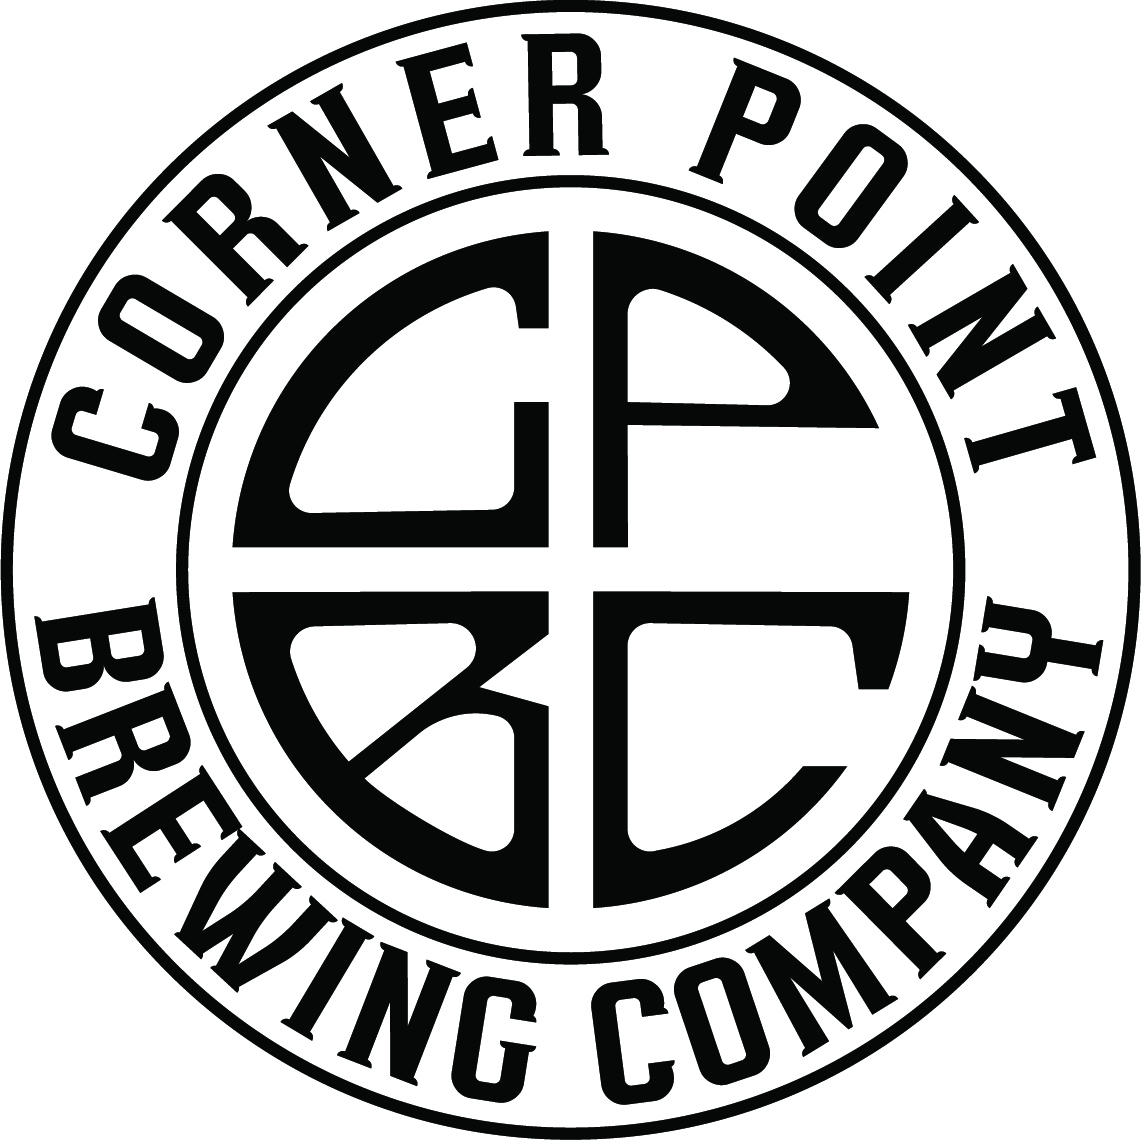 Corner Point Brewing Co